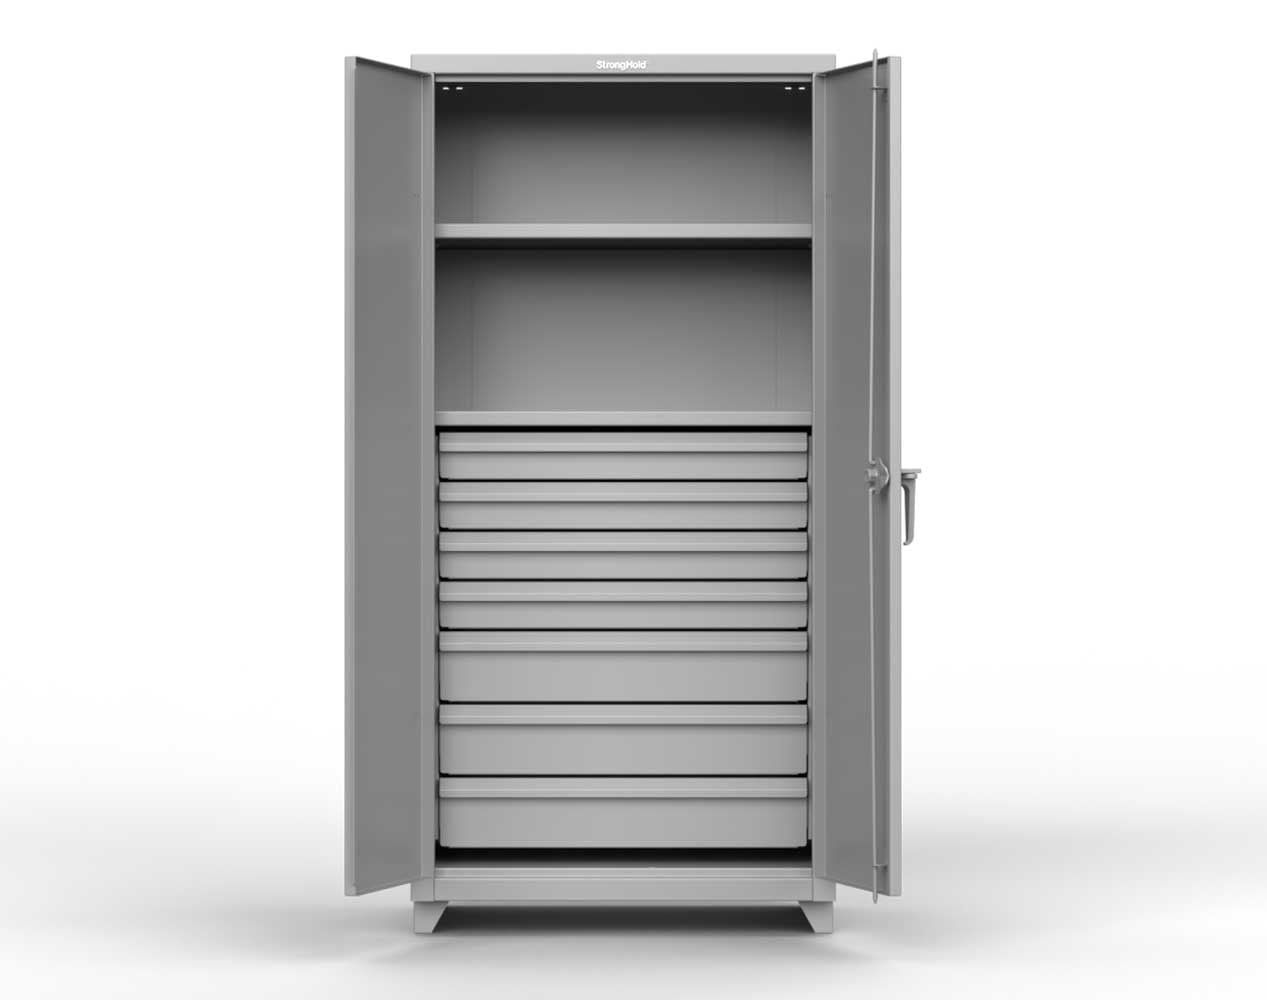 Heavy Duty 14 GA Cabinet with 7 Drawers, 2 Shelves – 36 In. W x 24 In. D x 75 In. H